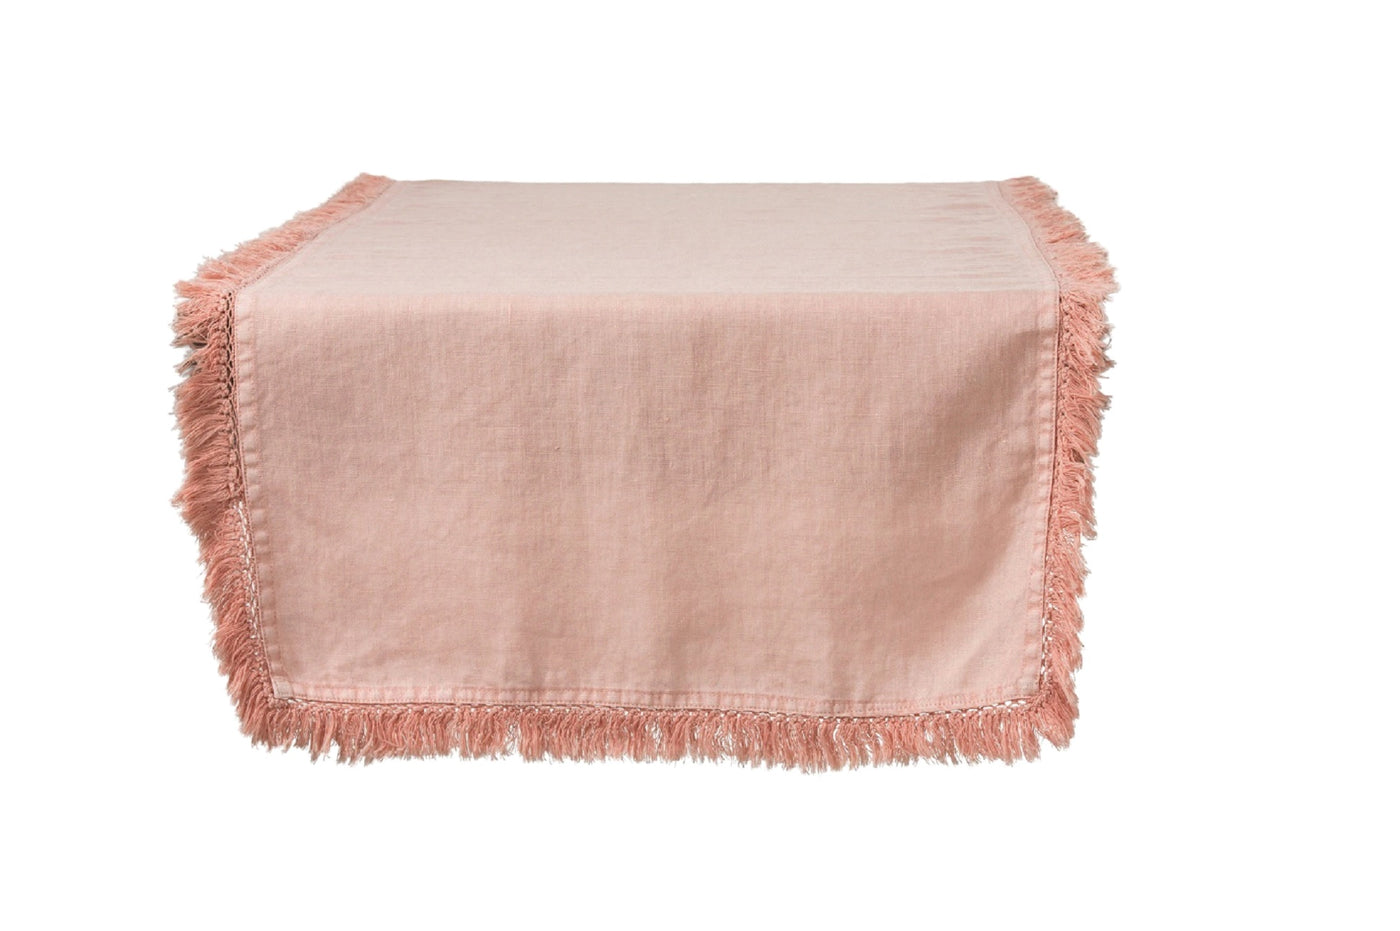 Peach Linen Table Runner With Fringing